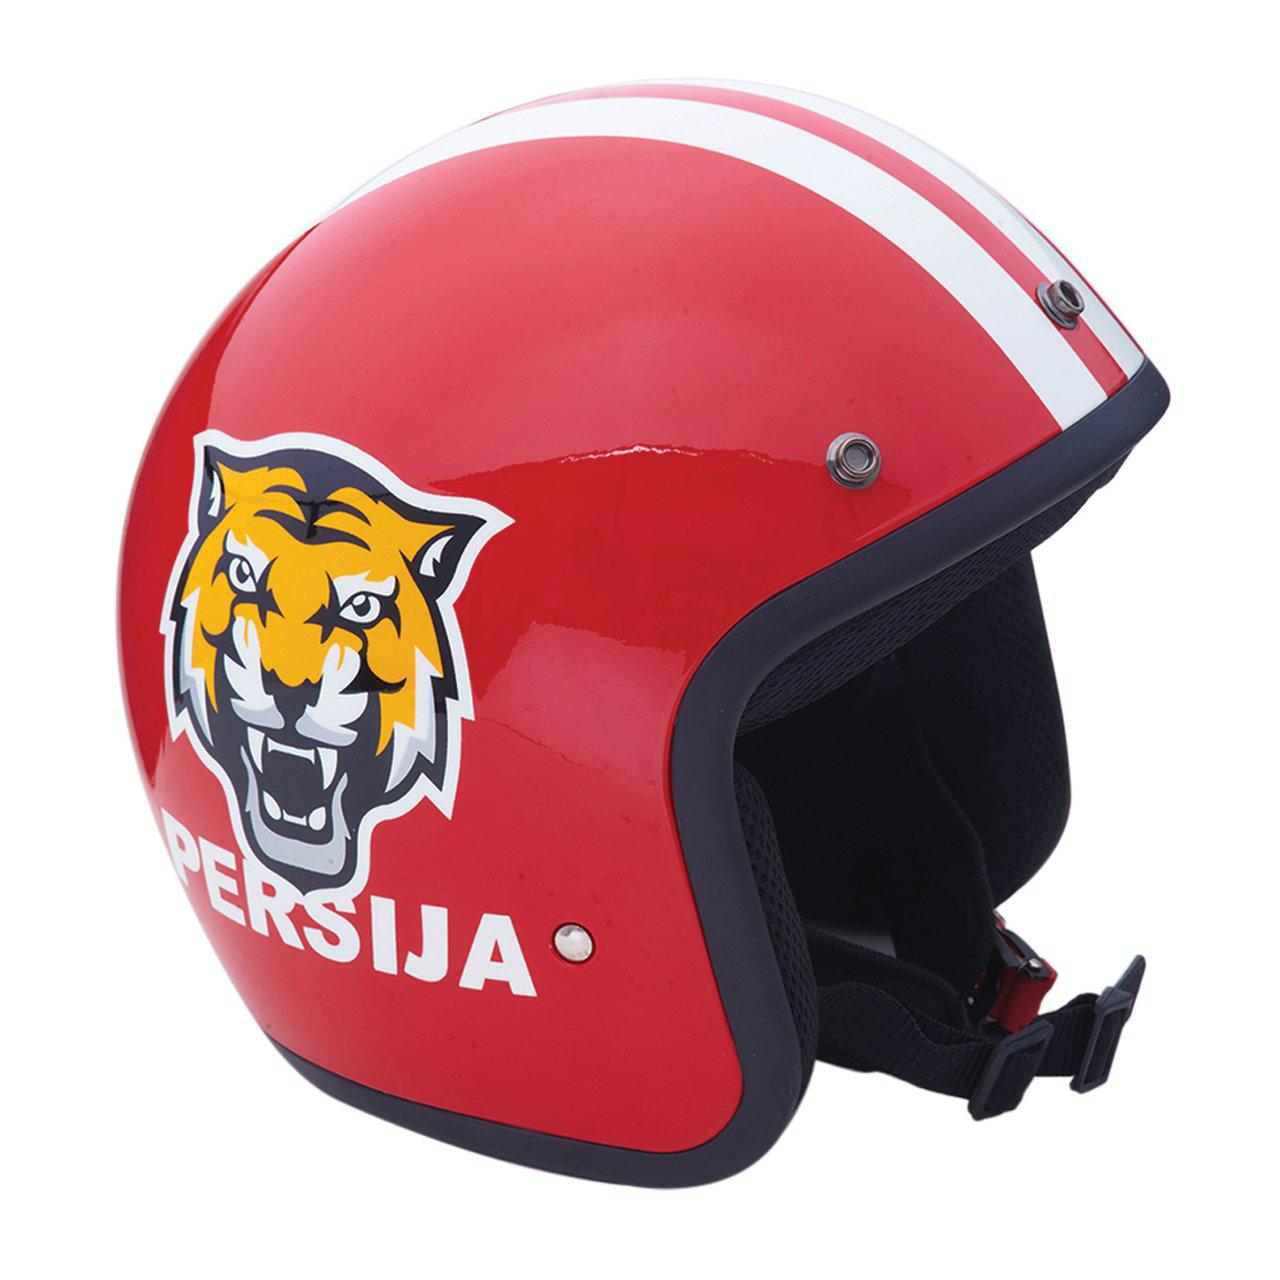 Helm Logo Persija Red